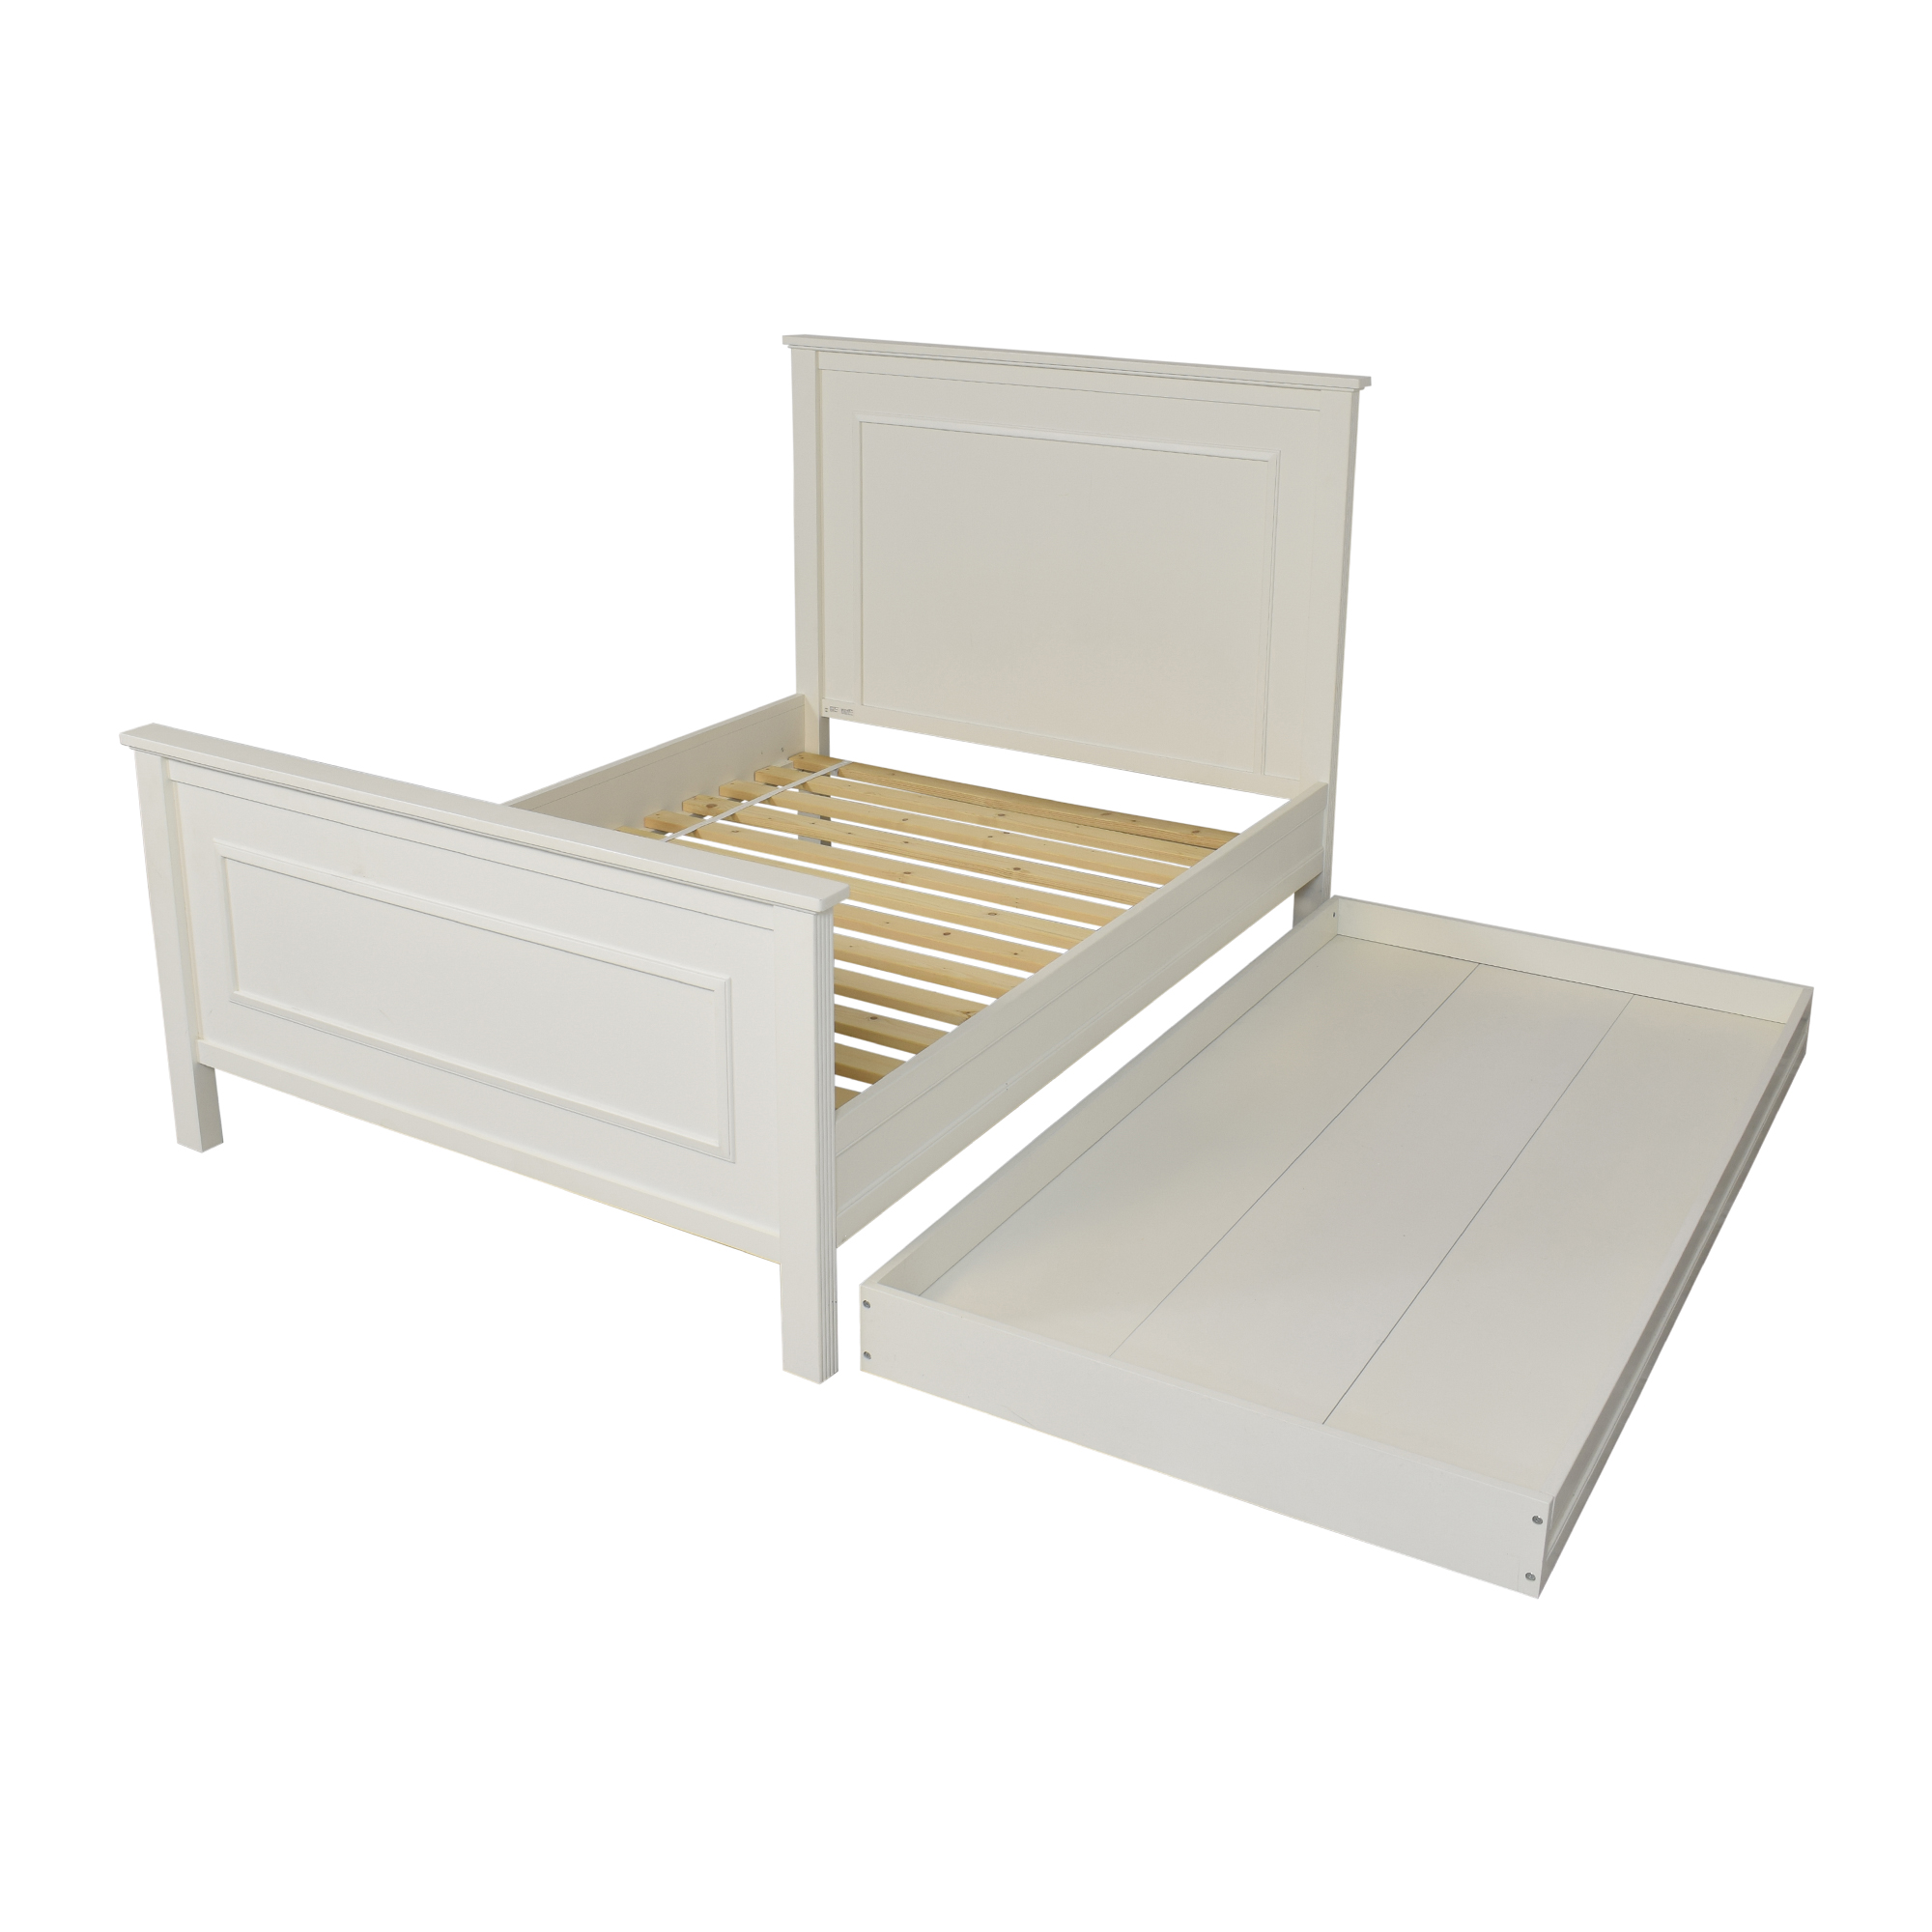 Pottery Barn Kids Pottery Barn Kids Fillmore Bed with Trundle Beds